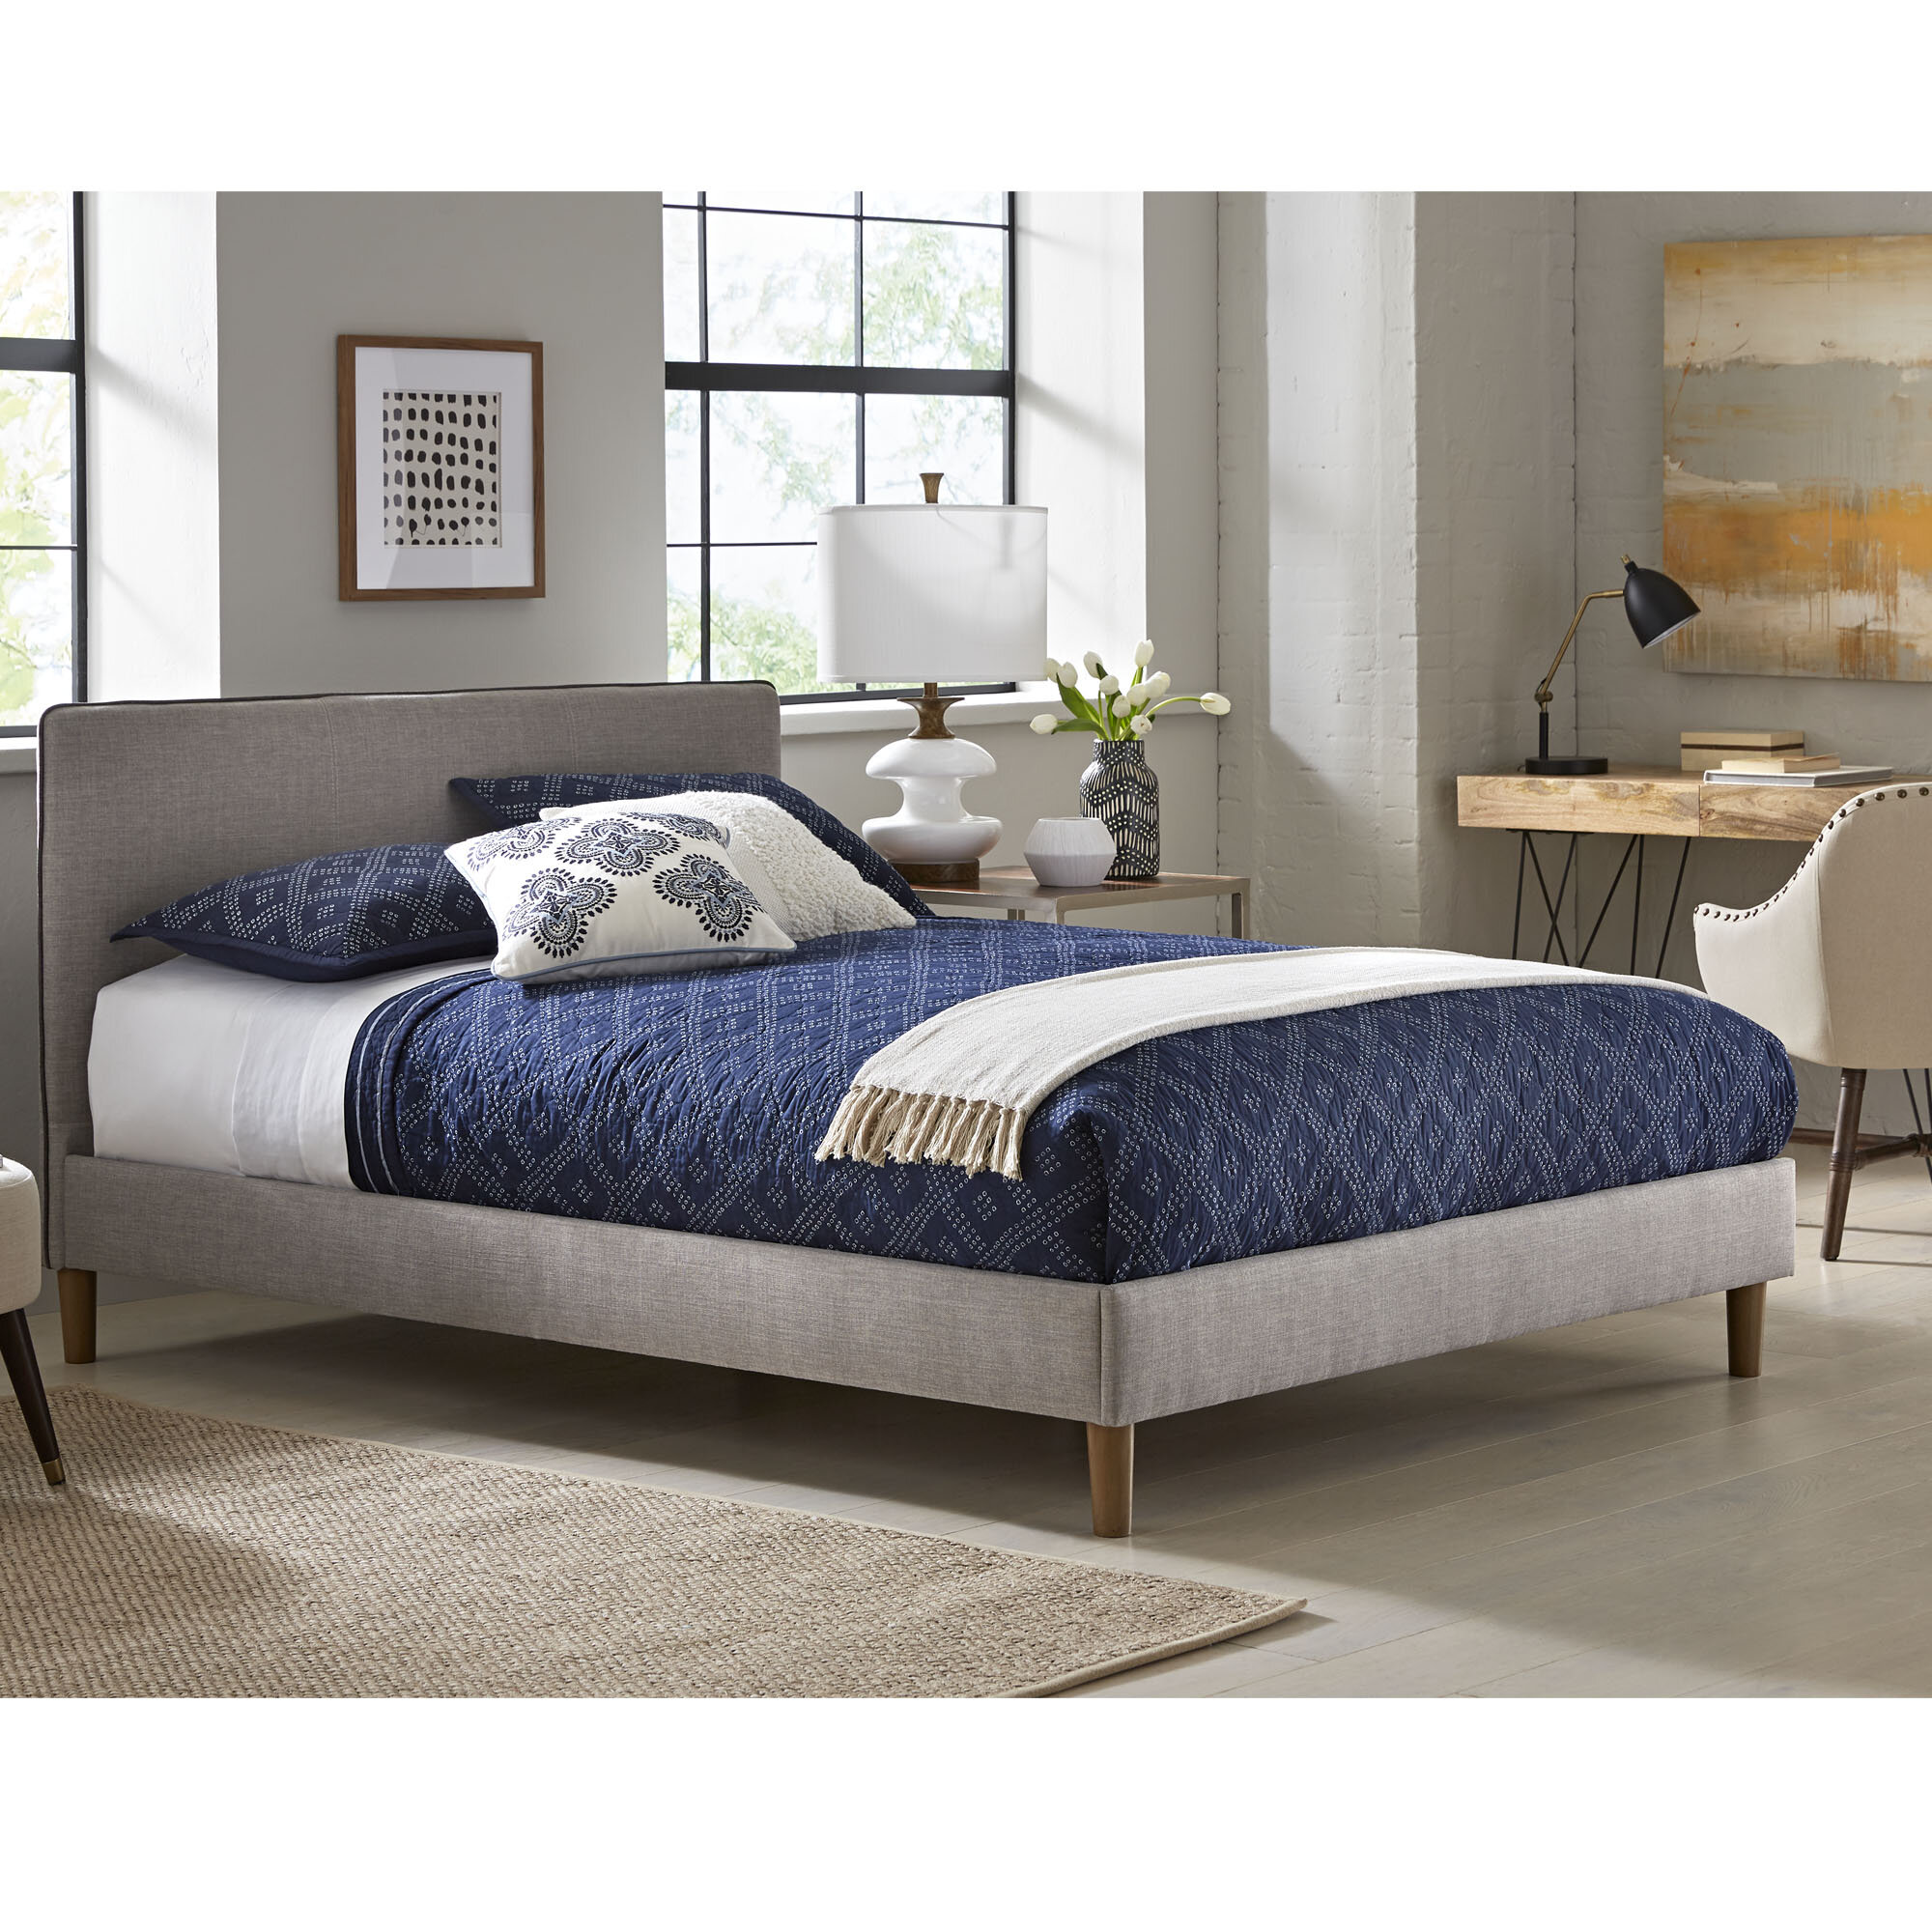 Westlake Upholstered Platform Bed